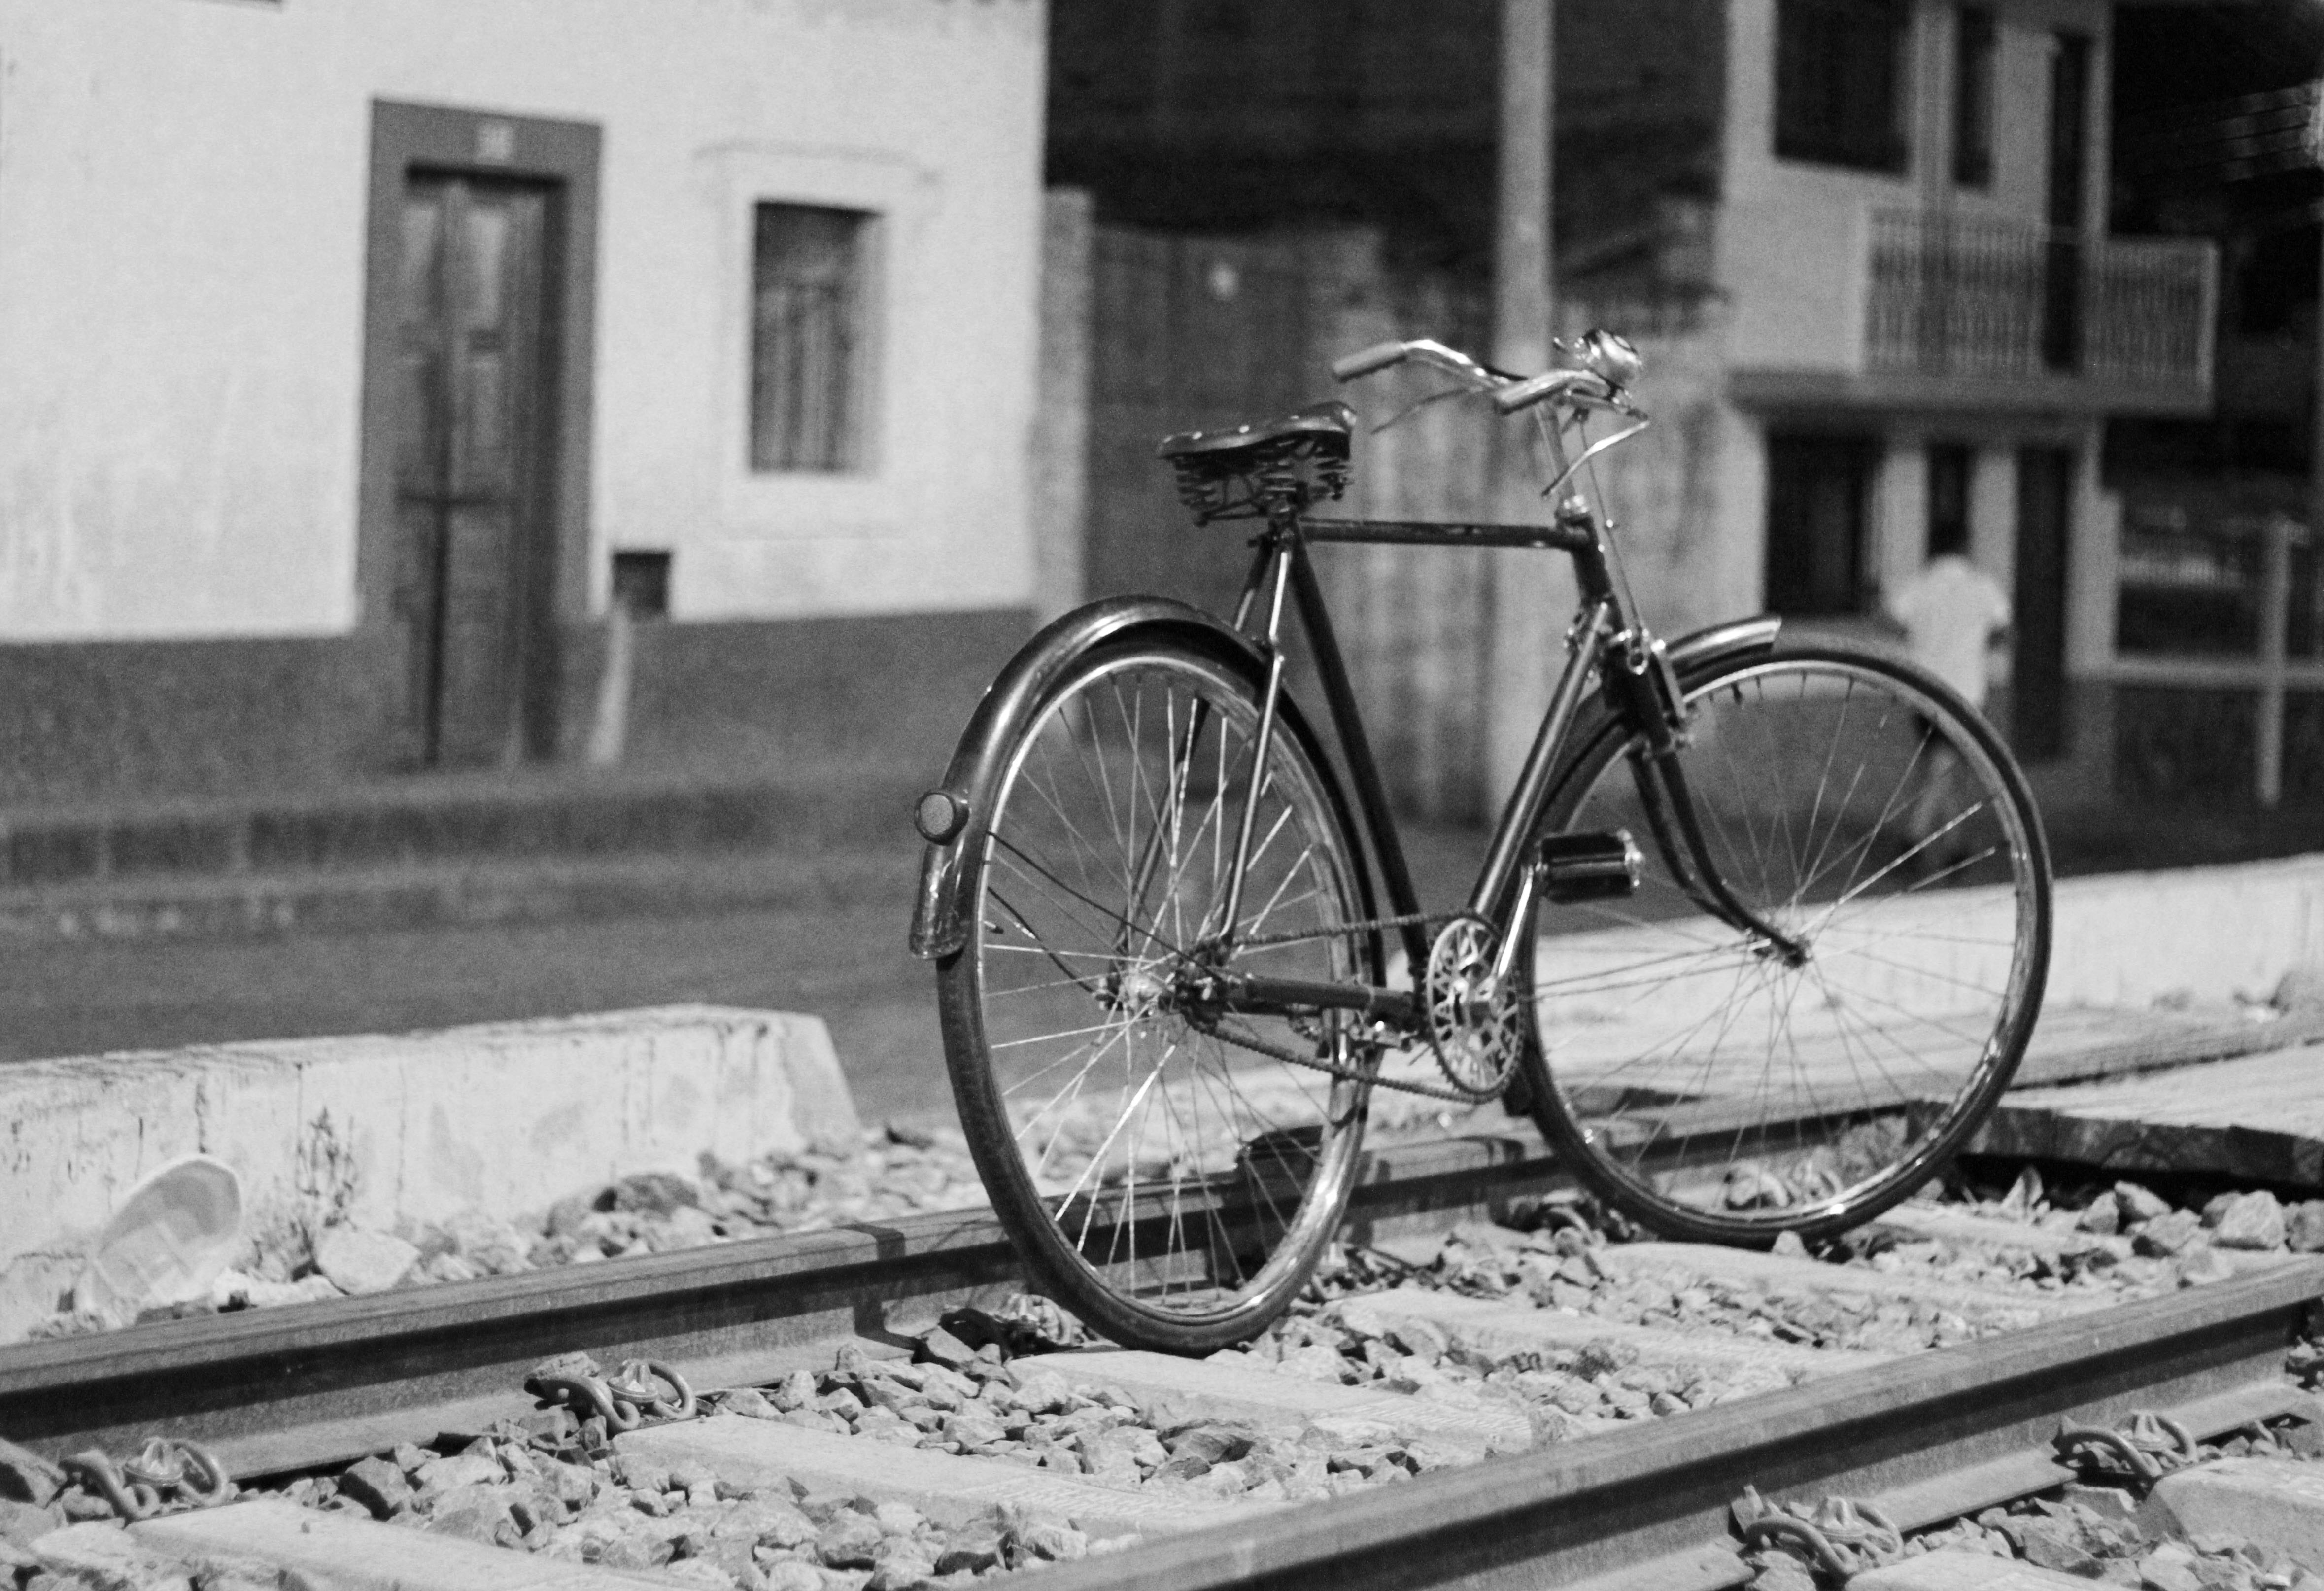 Black and white shot of lone bike standing on railroad tracks with building in background